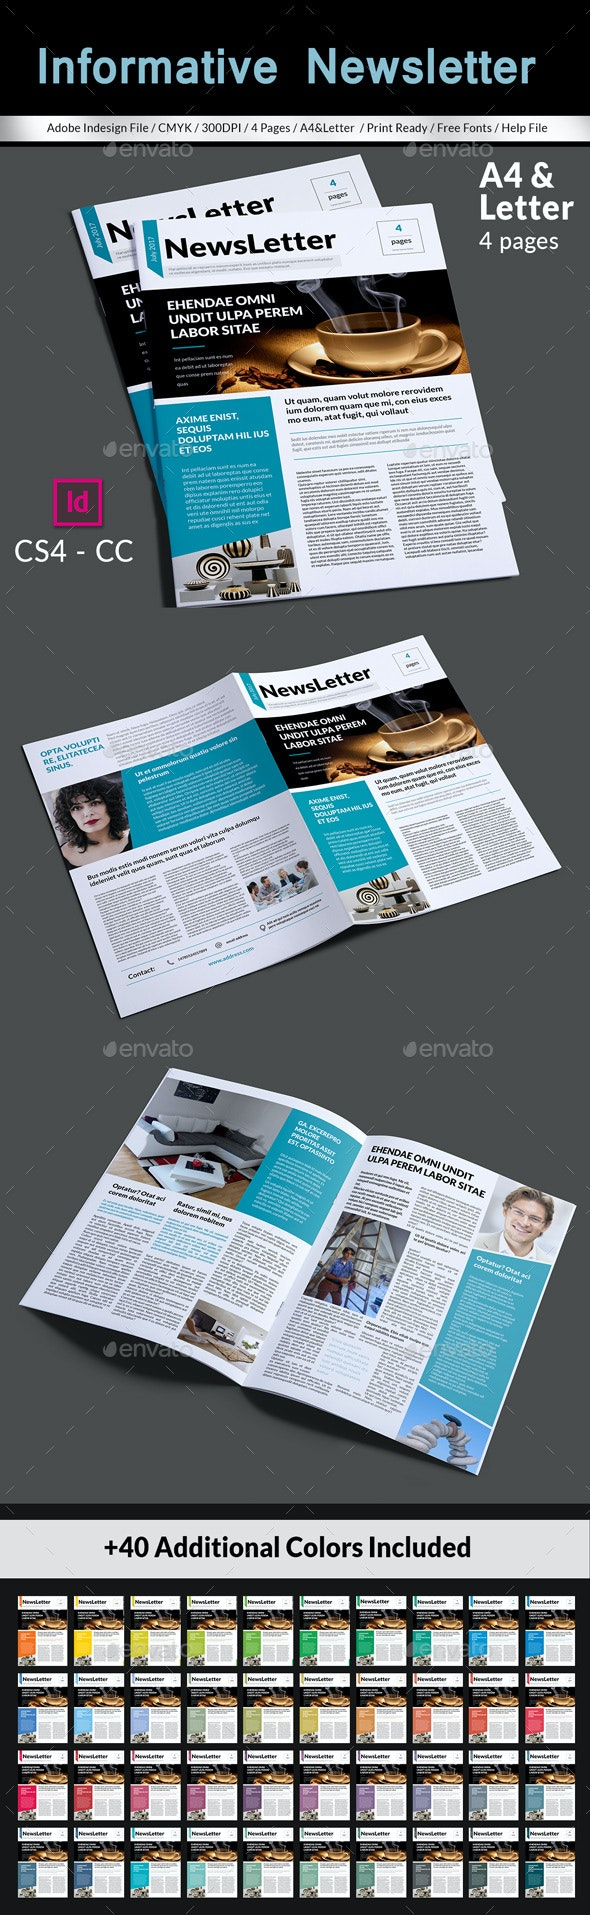 Informative Newsletter Template By Magic Reflection